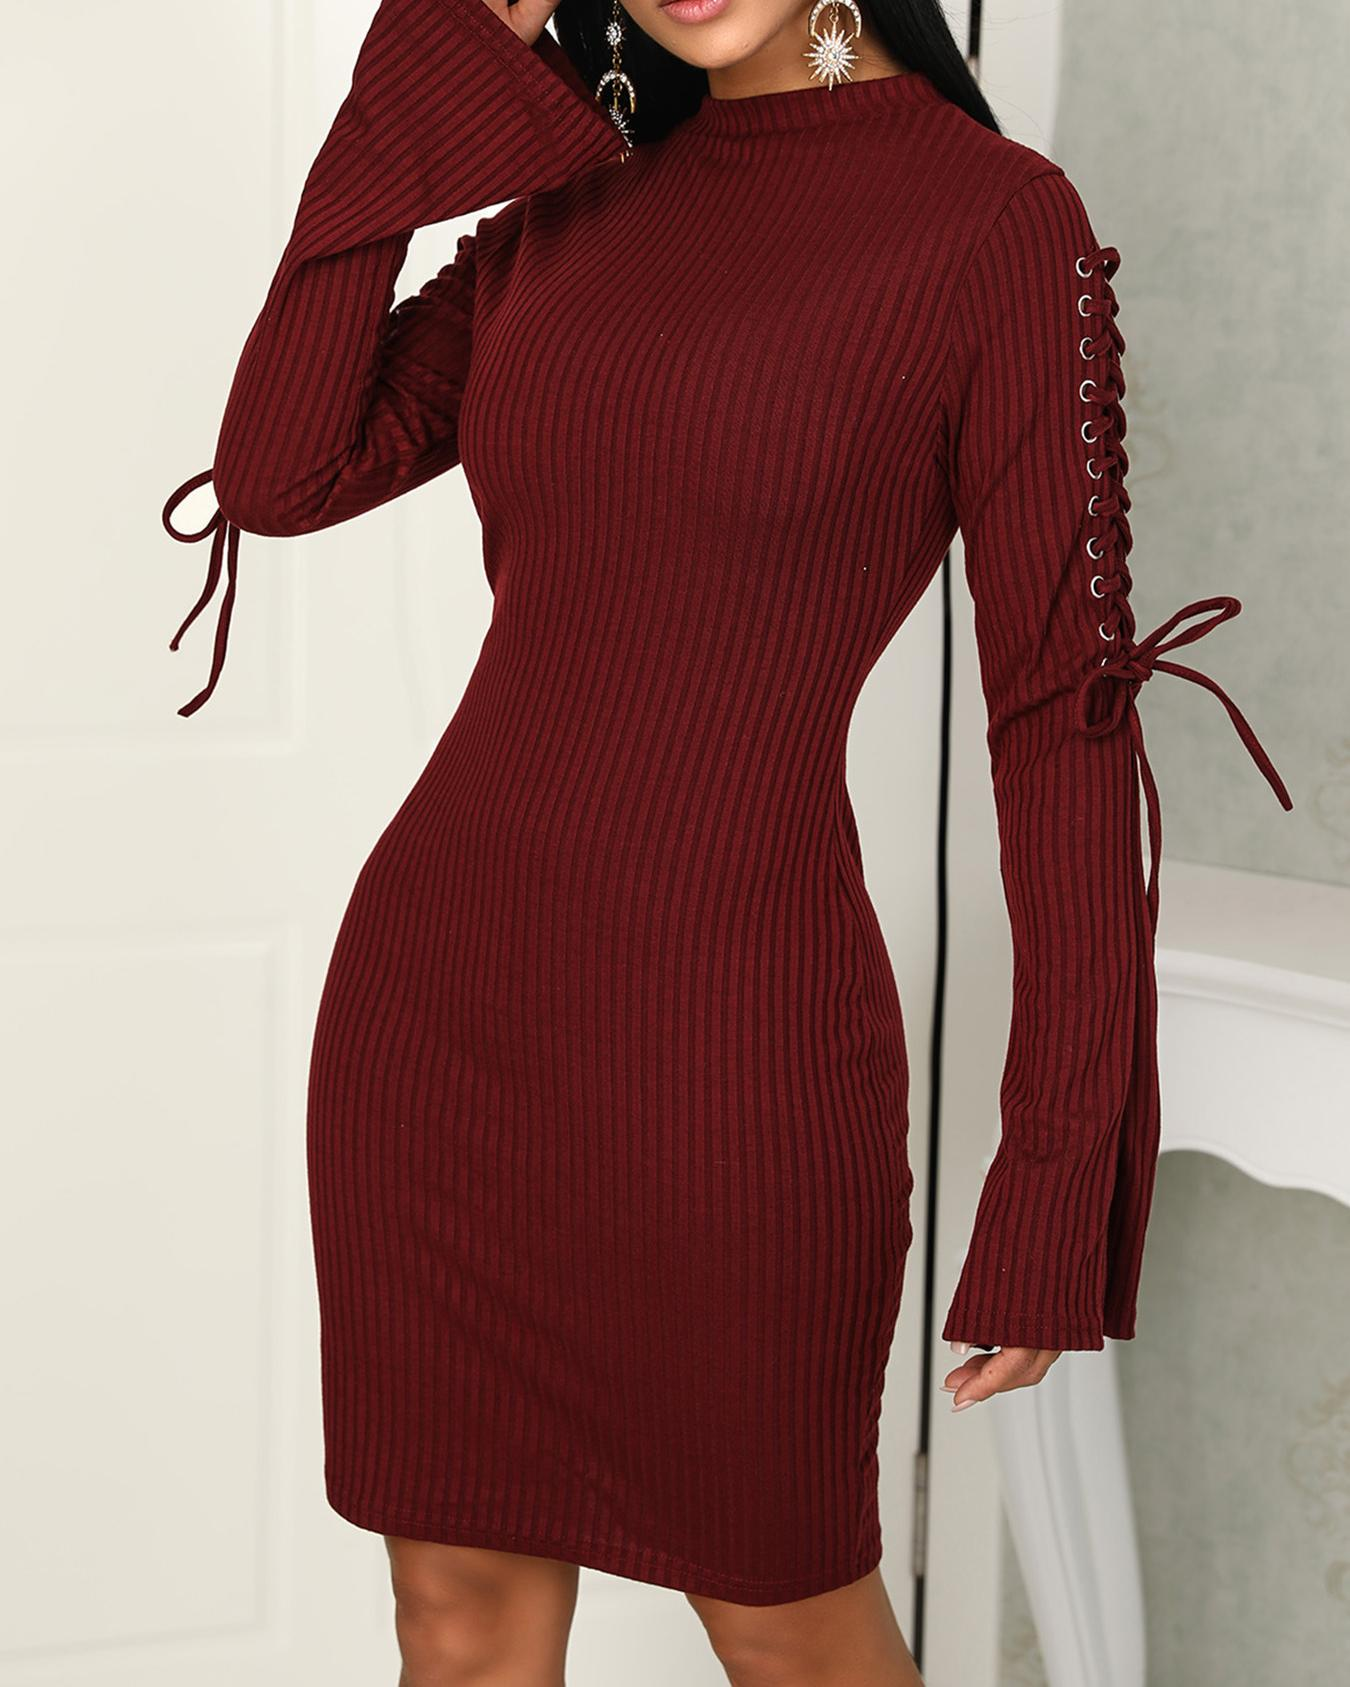 Solid Lace-Up Eyelet Flared Sleeve Bodycon Dress, Wine red